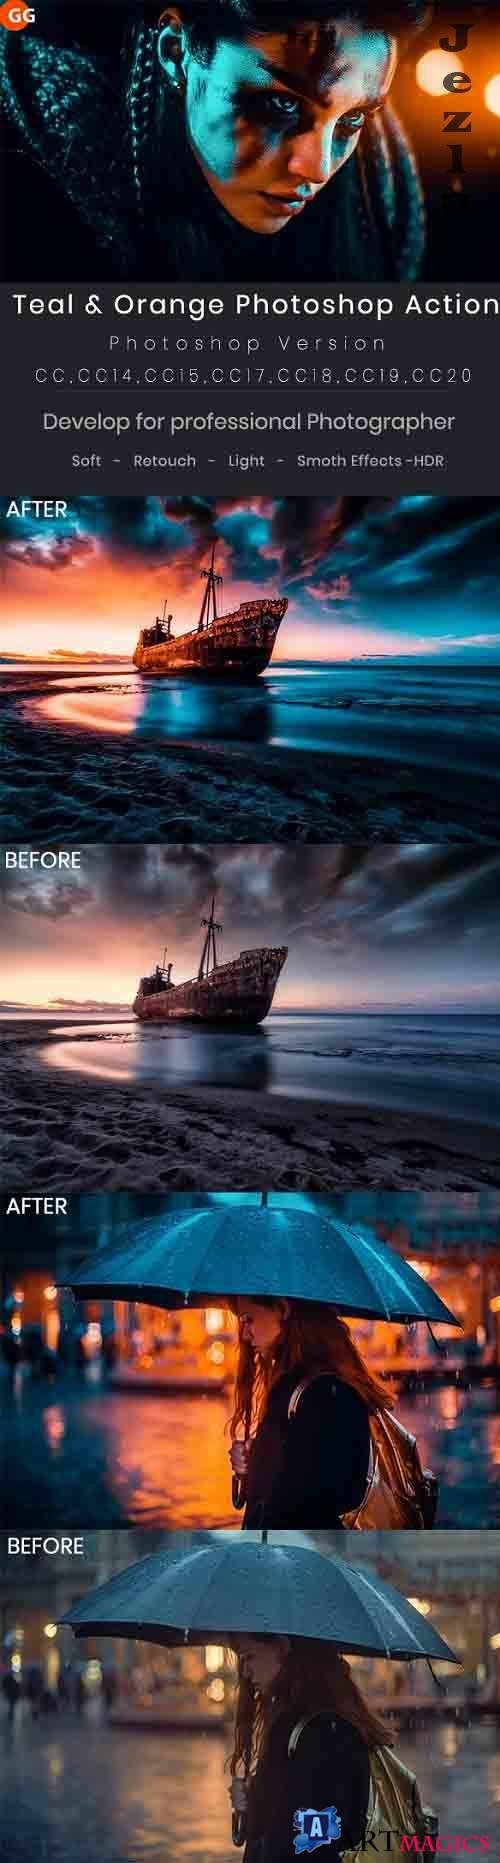 GraphicRiver - Teal & Orange Photoshop Action 28975559